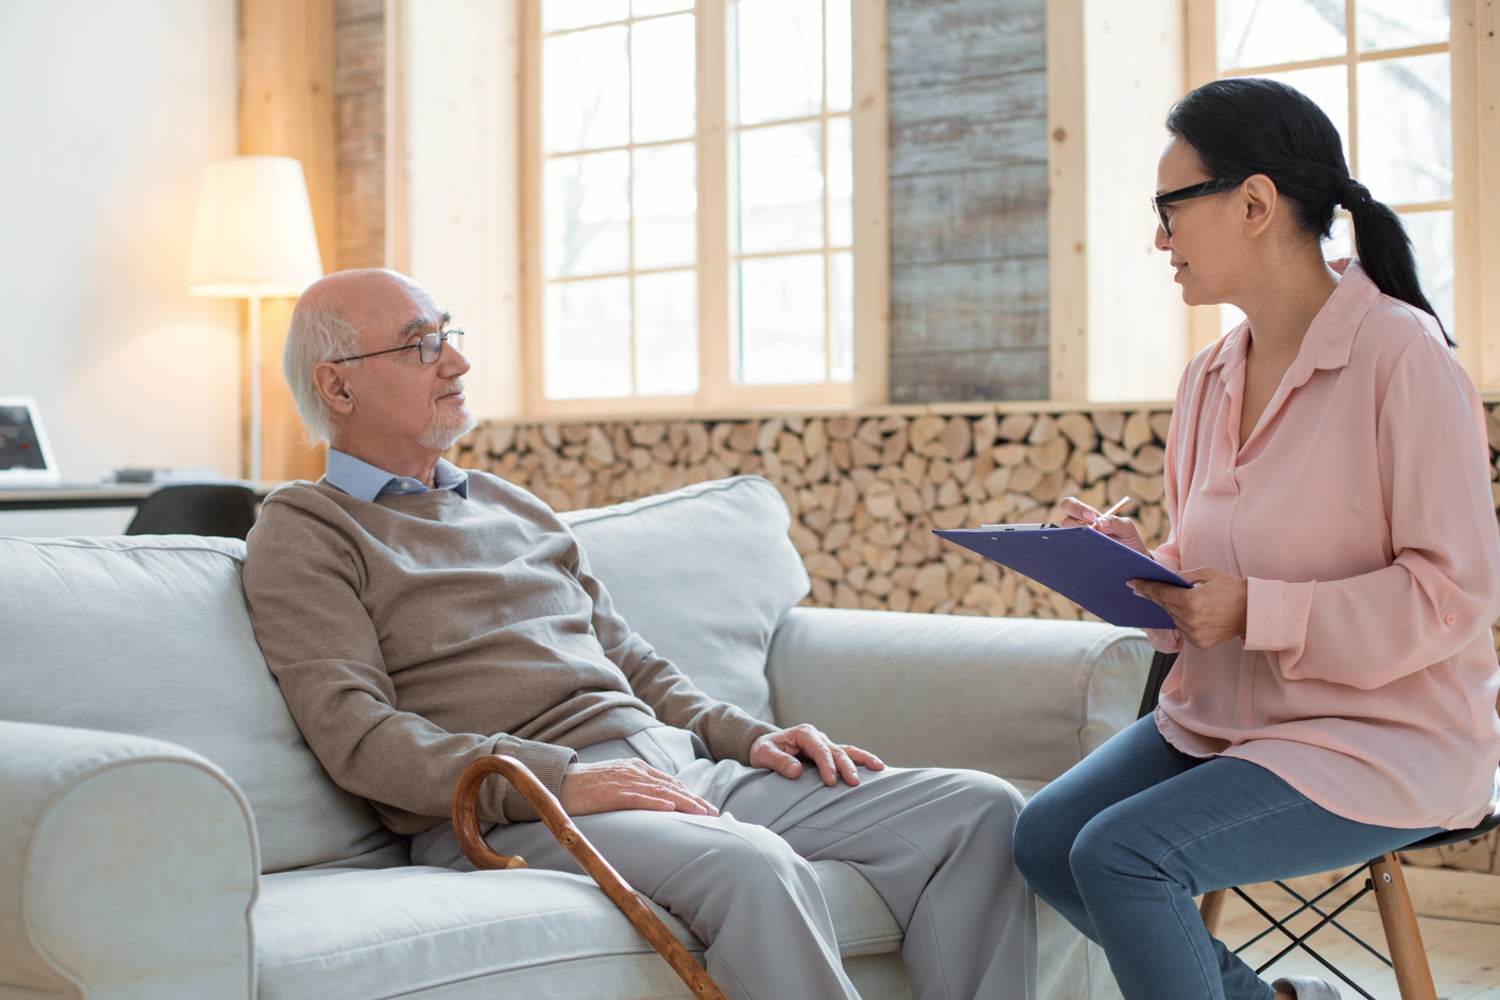 Caregiver assessing the wellbeing of senior adult